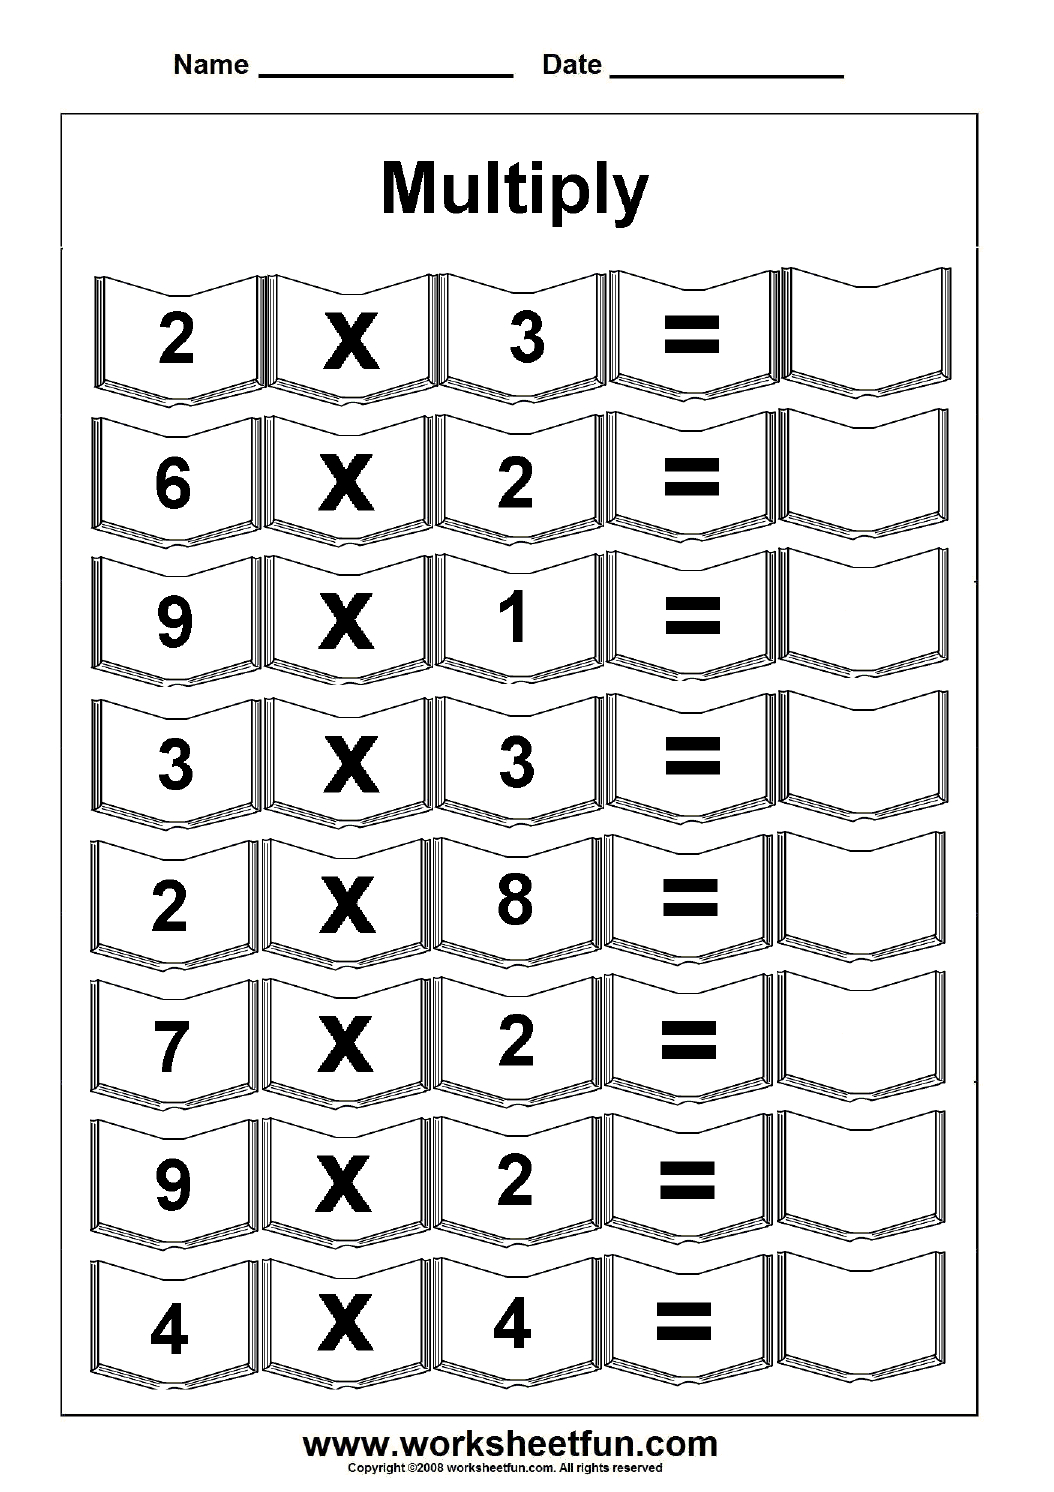 Multiplication – 5 Worksheets / Free Printable Worksheets – Worksheetfun - Free Printable Multiplication Sheets